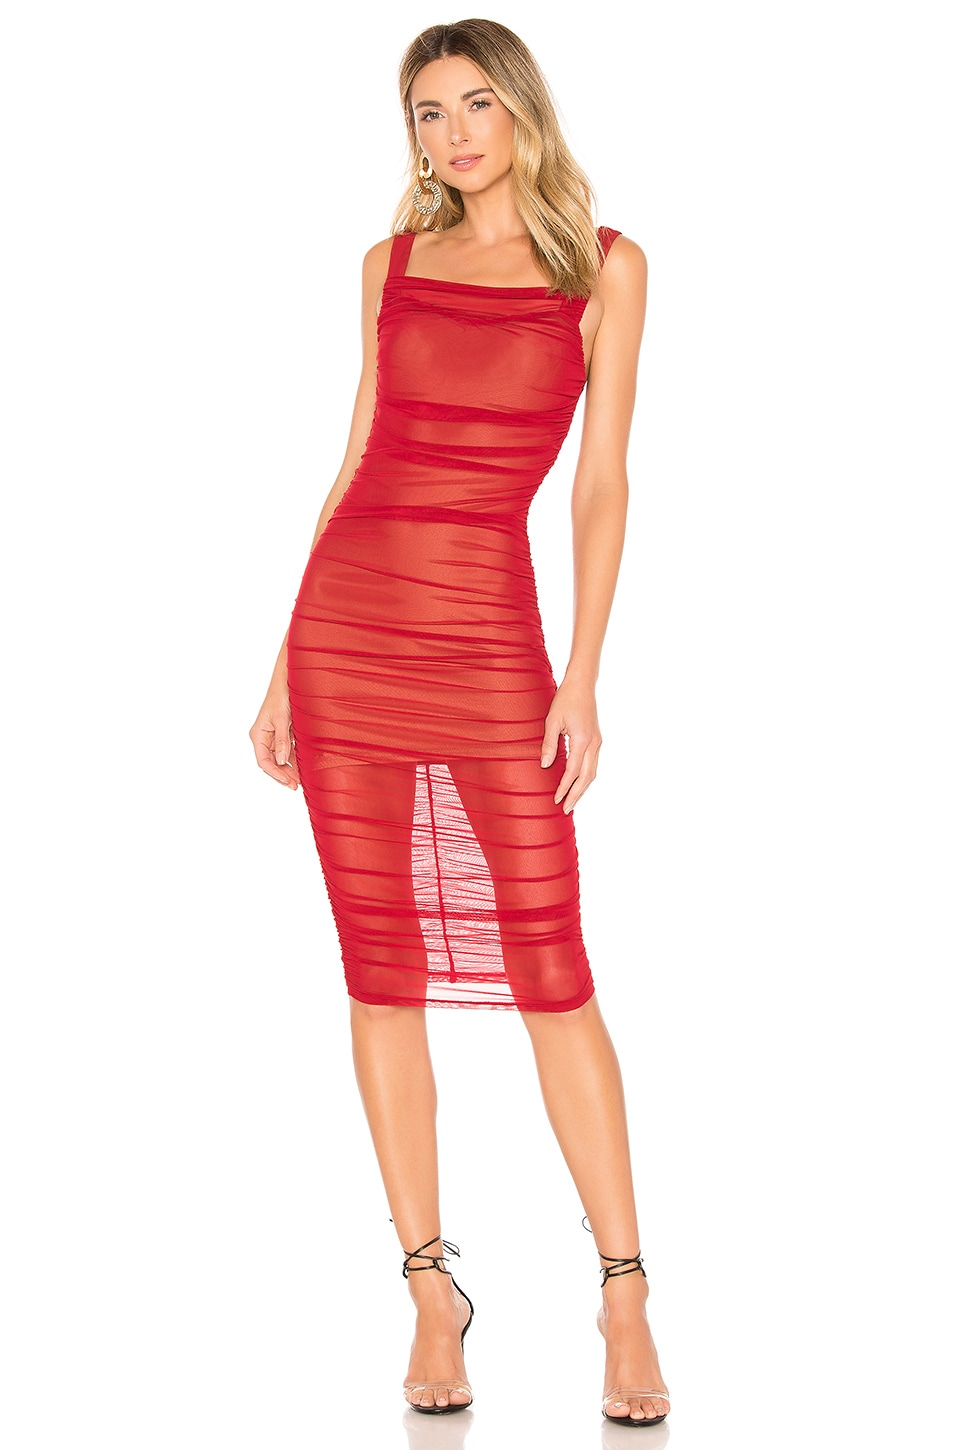 MAJORELLE Rachelle Midi Dress in Cranberry Red